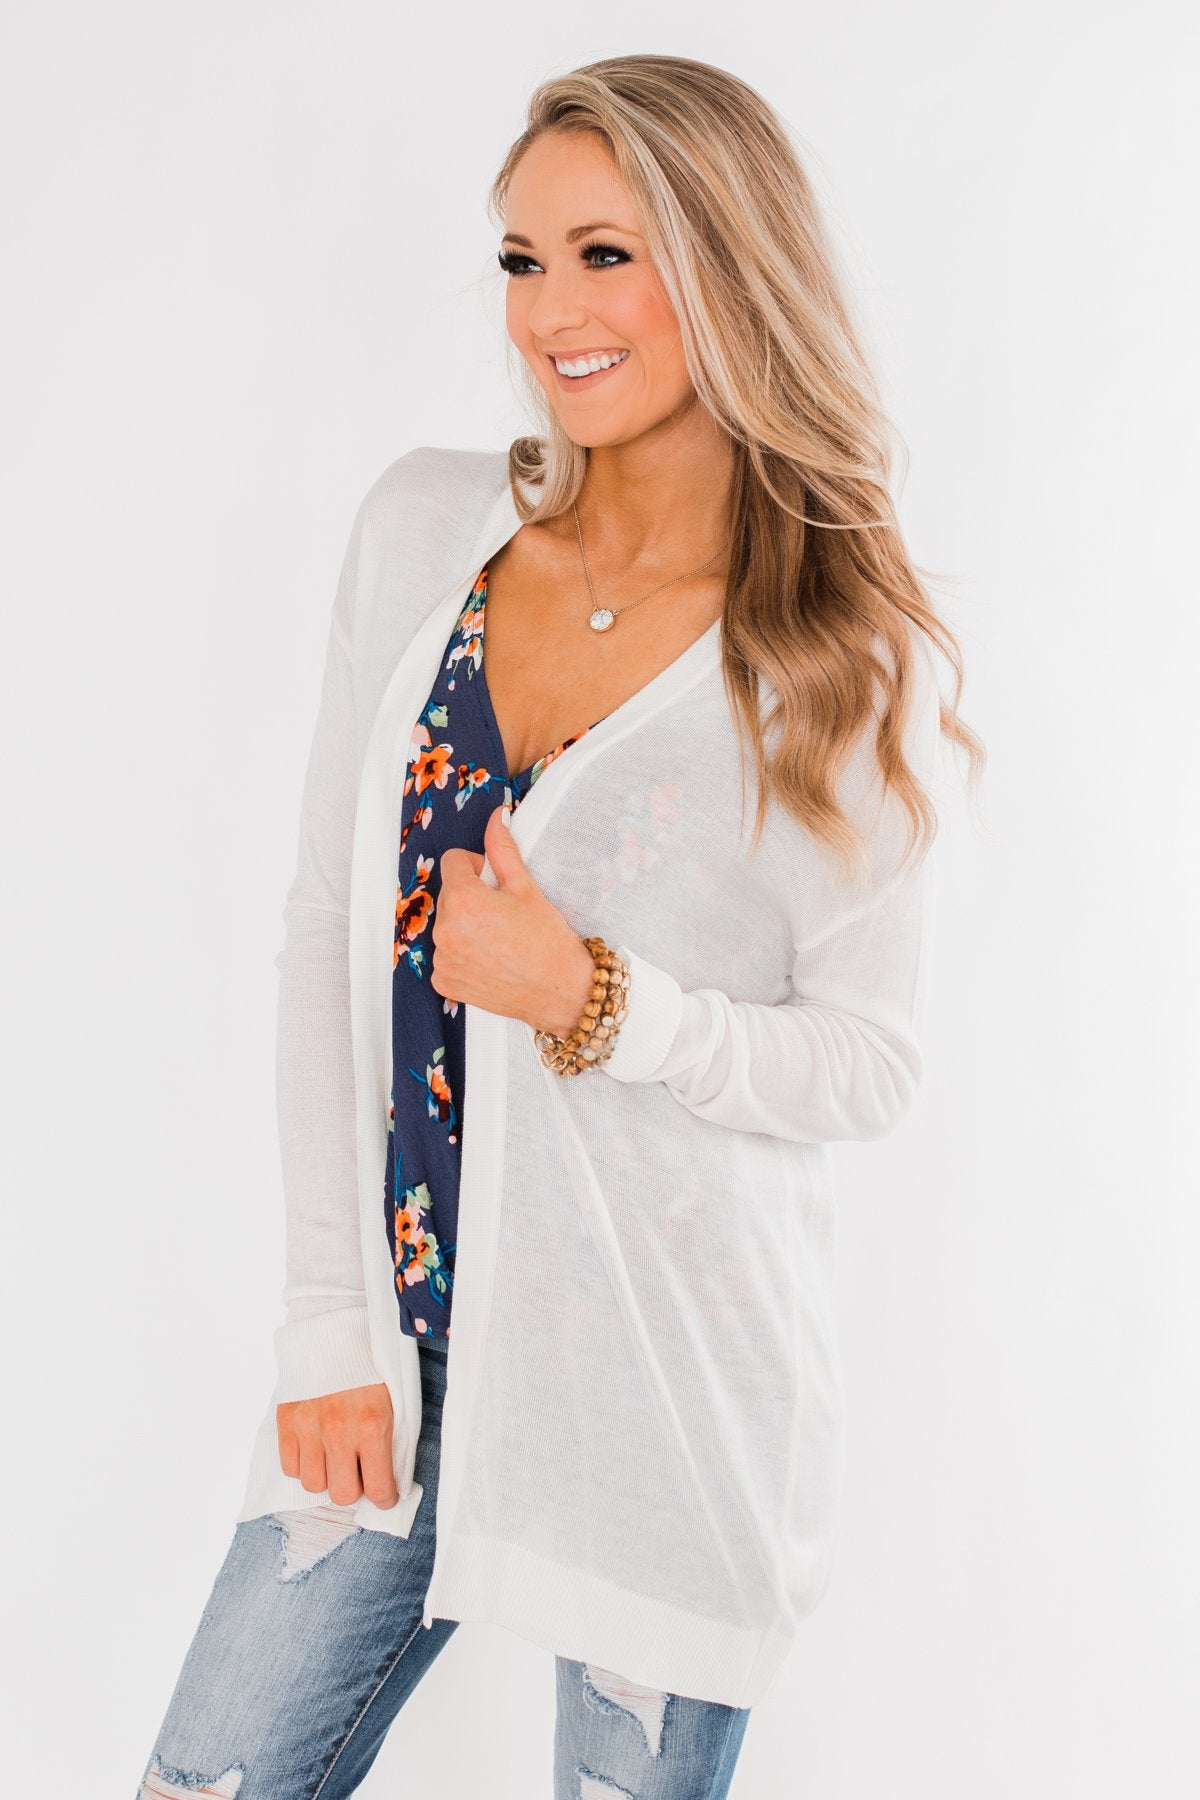 Simply Perfect Cardigan- White